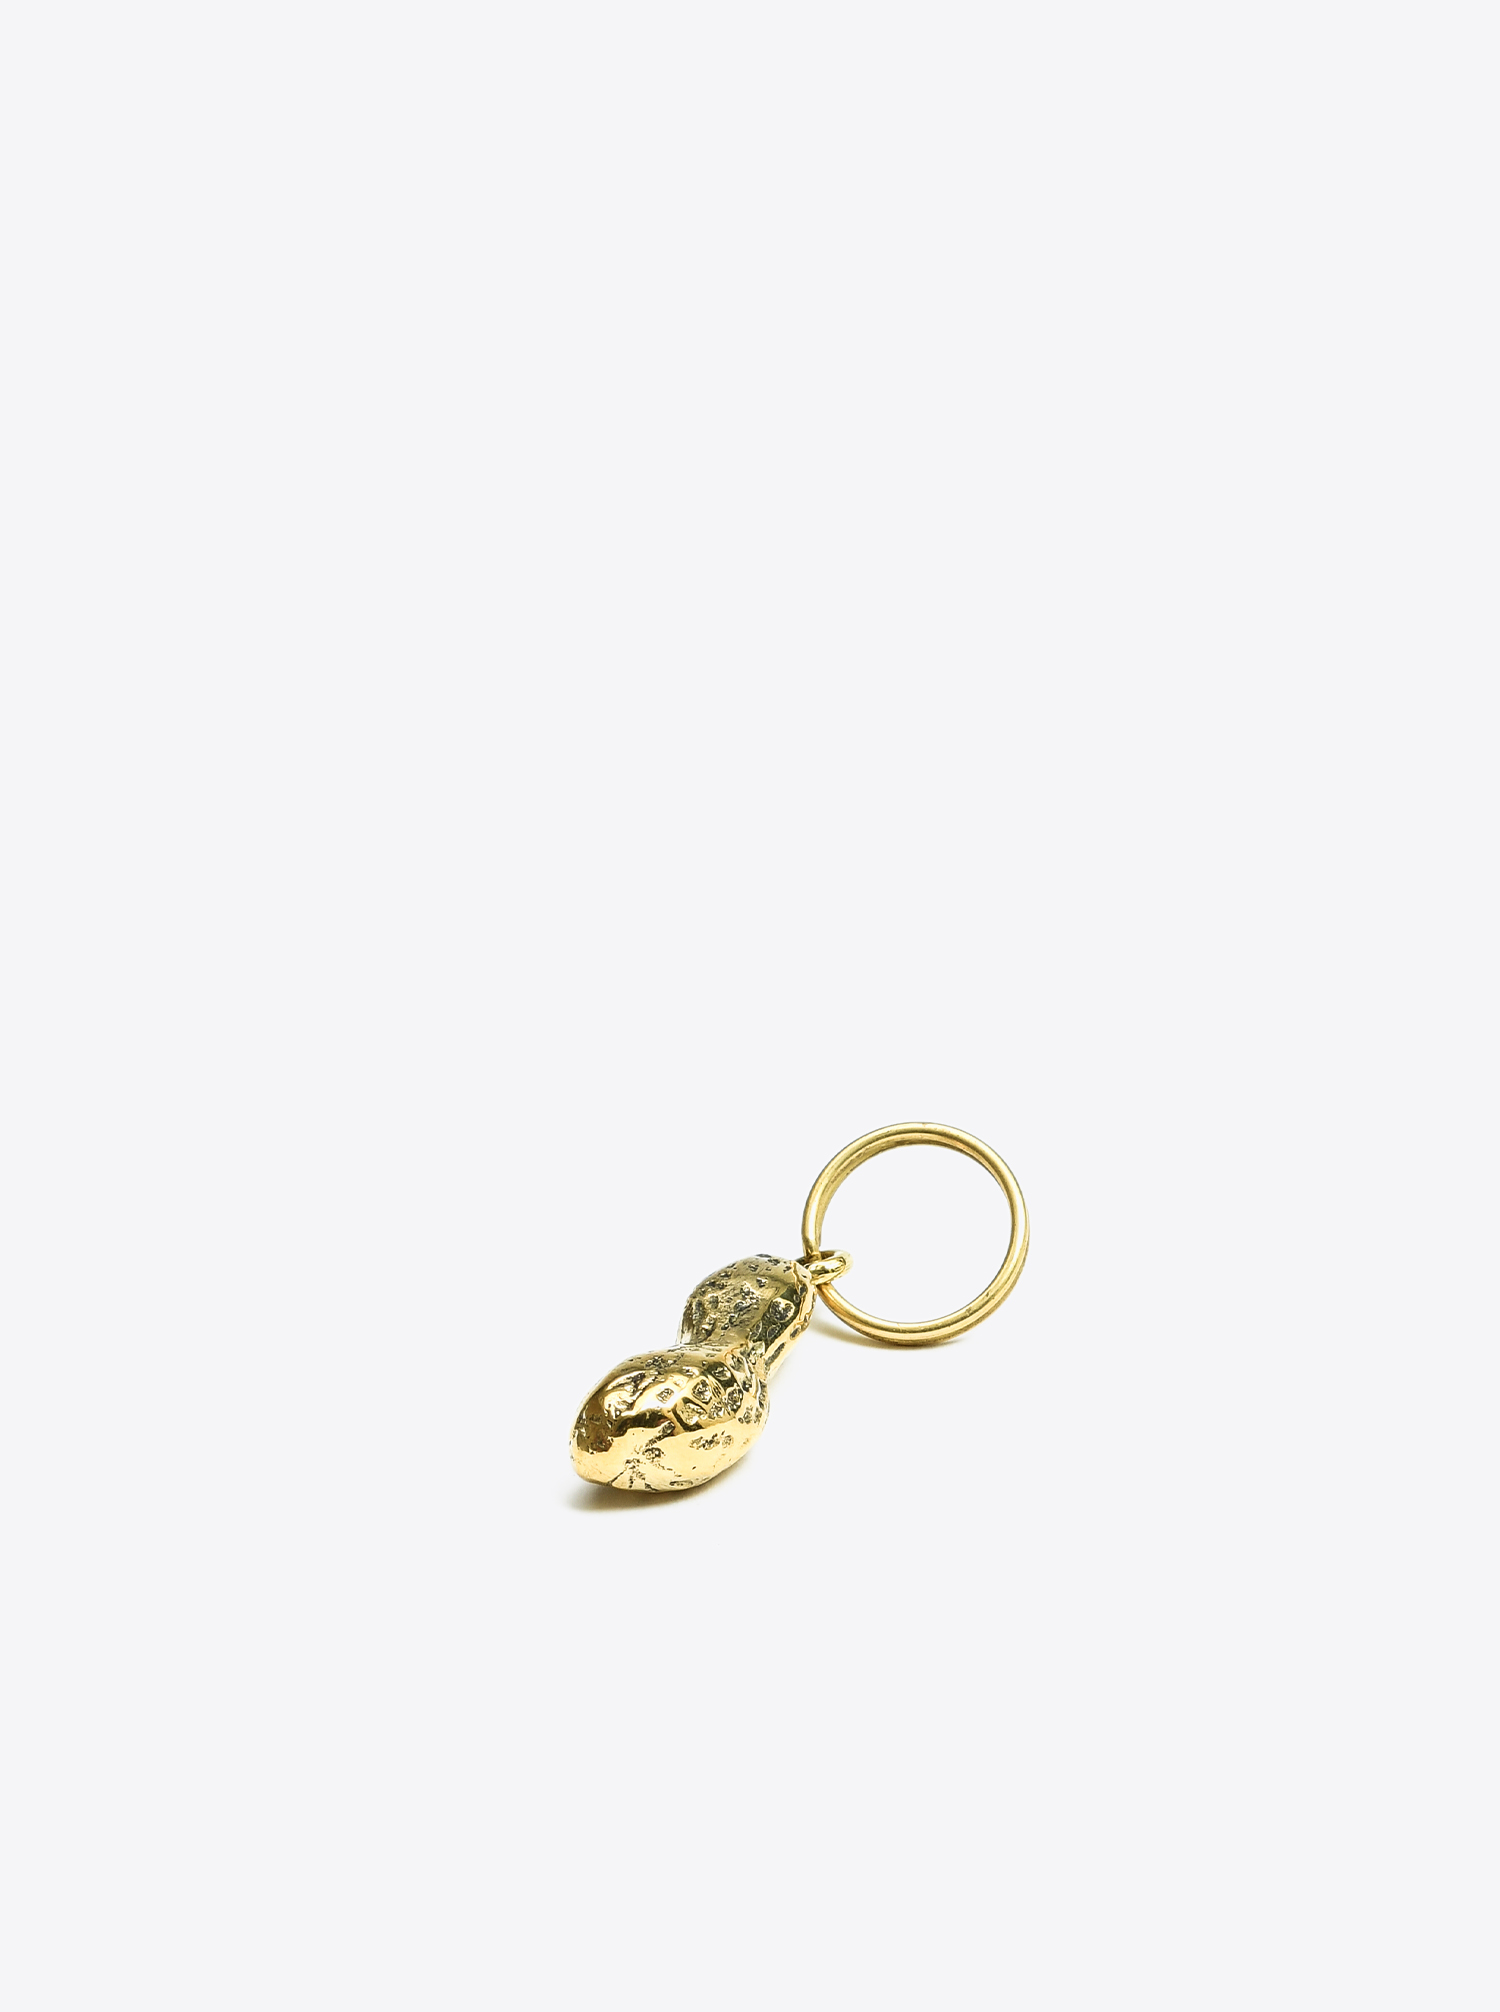 "Key Chain ""Pea Nut"" Brass polished"